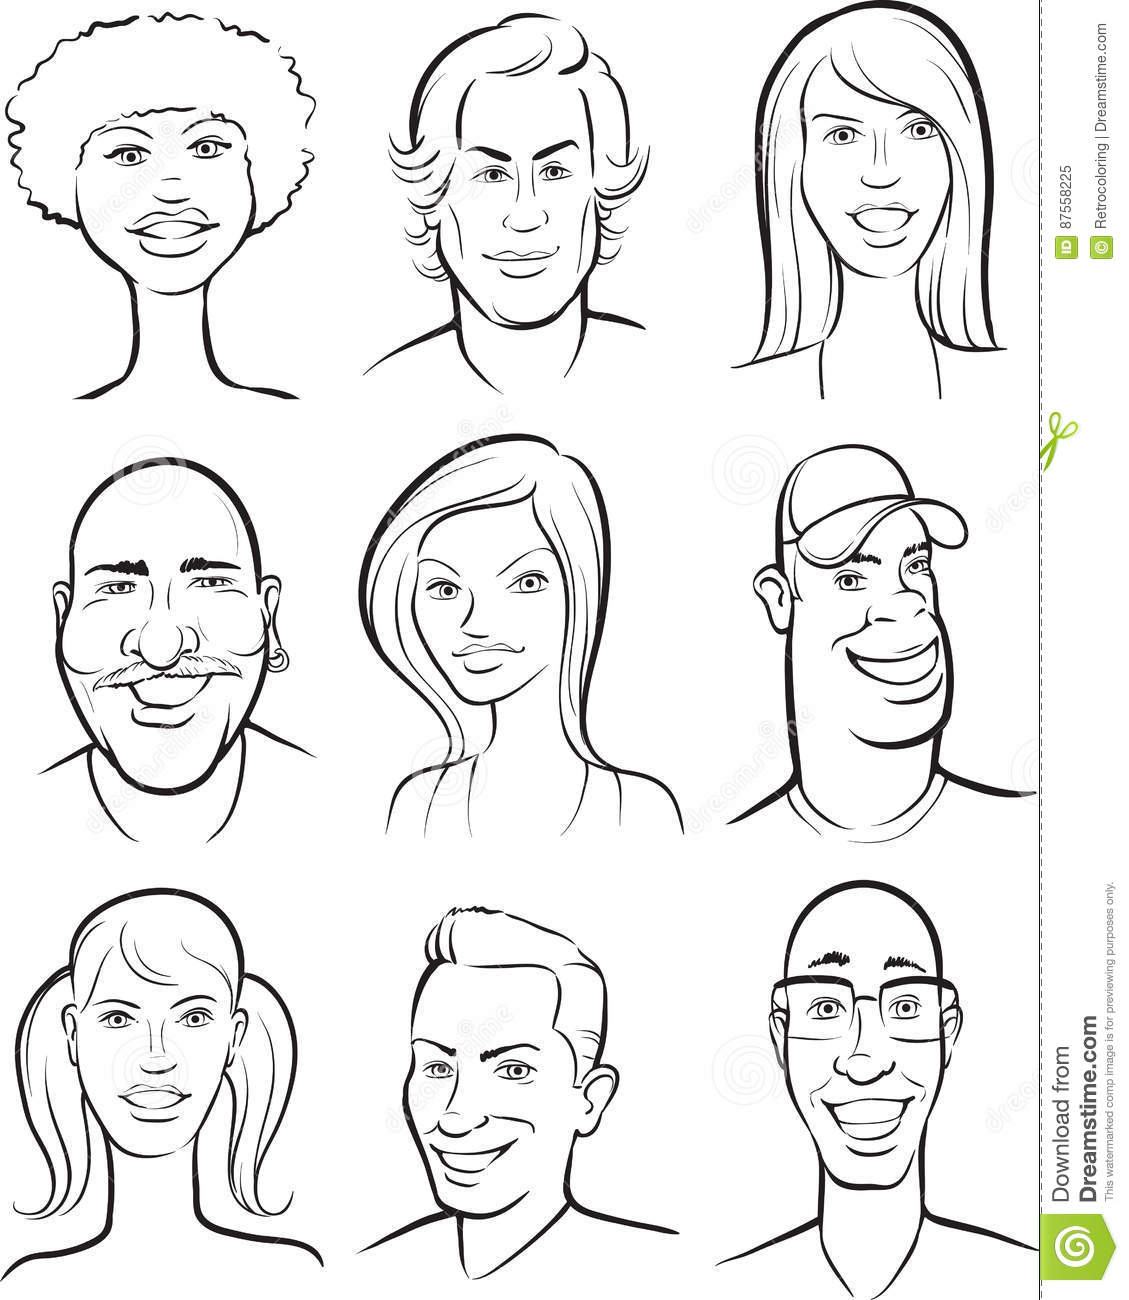 Whiteboard Drawing - Smiling People Faces Collection Stock Vector ...